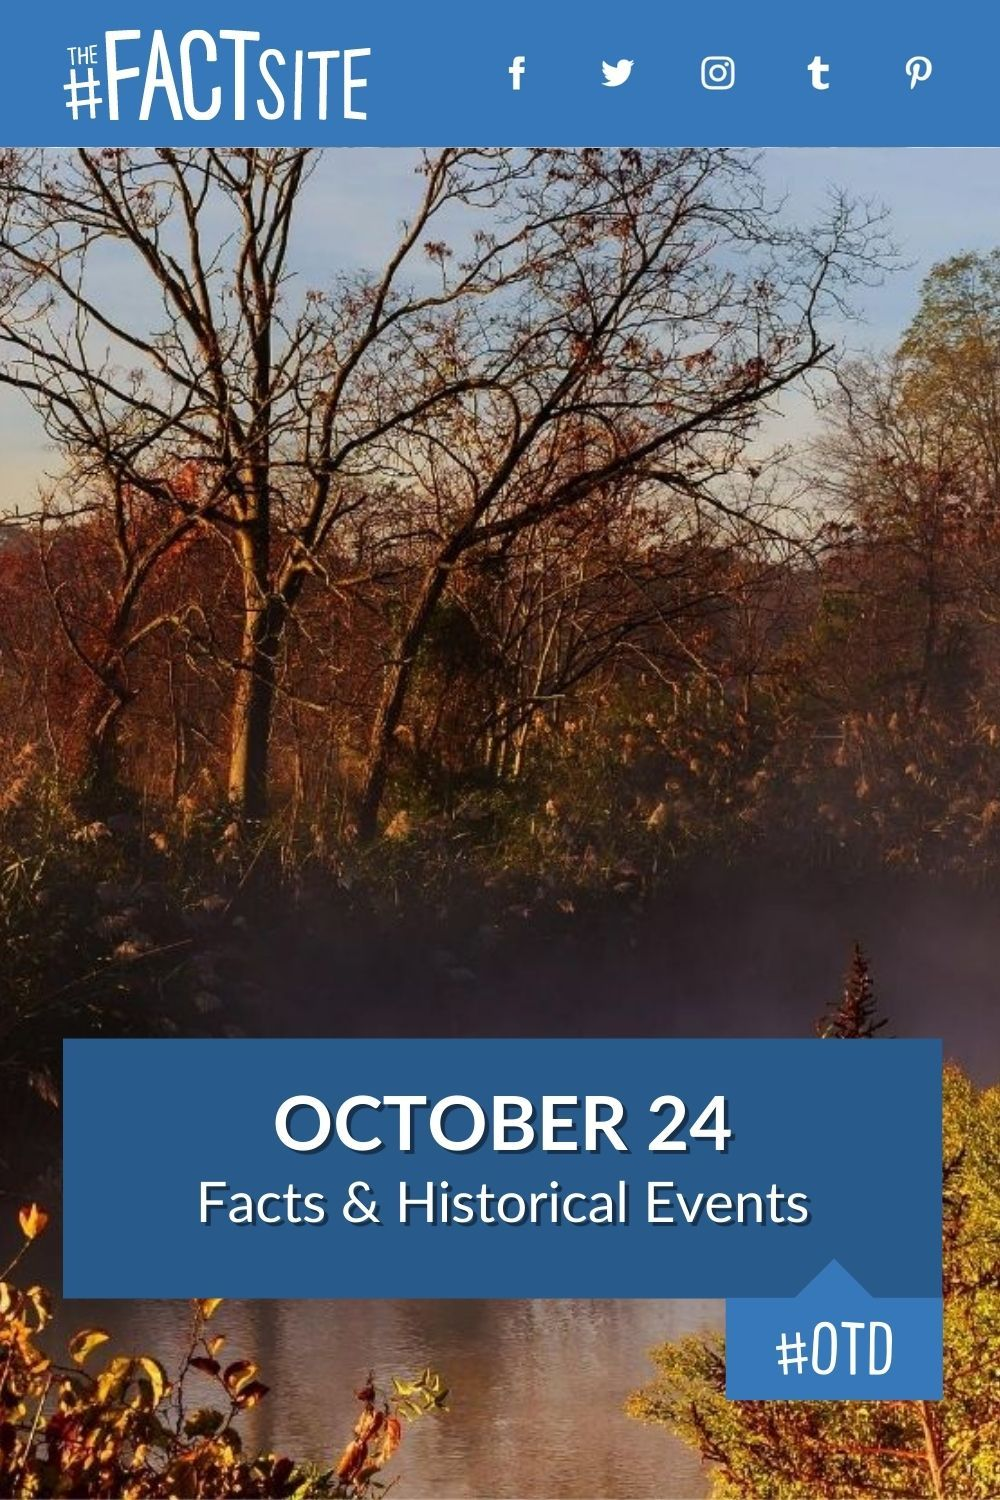 Facts & Historic Events That Happened on October 24